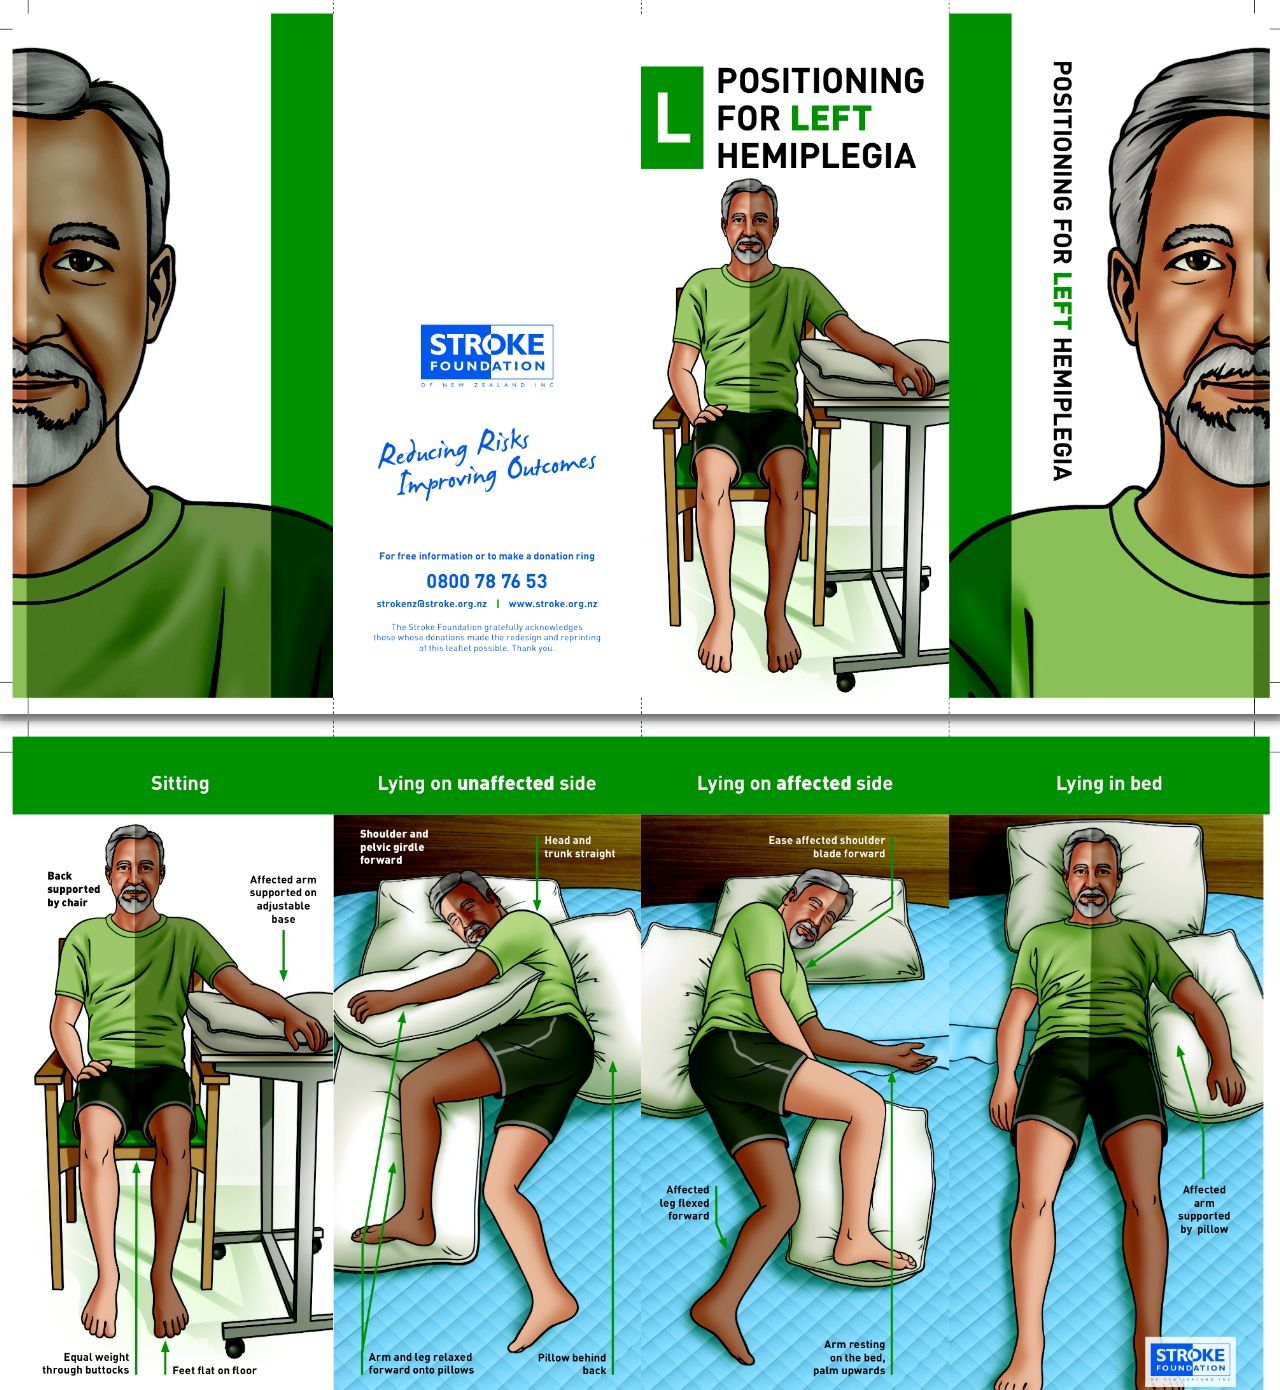 Cartoon physical therapy - Stroke Patient Education Positioning For Left Hemiplegia Or Weakness